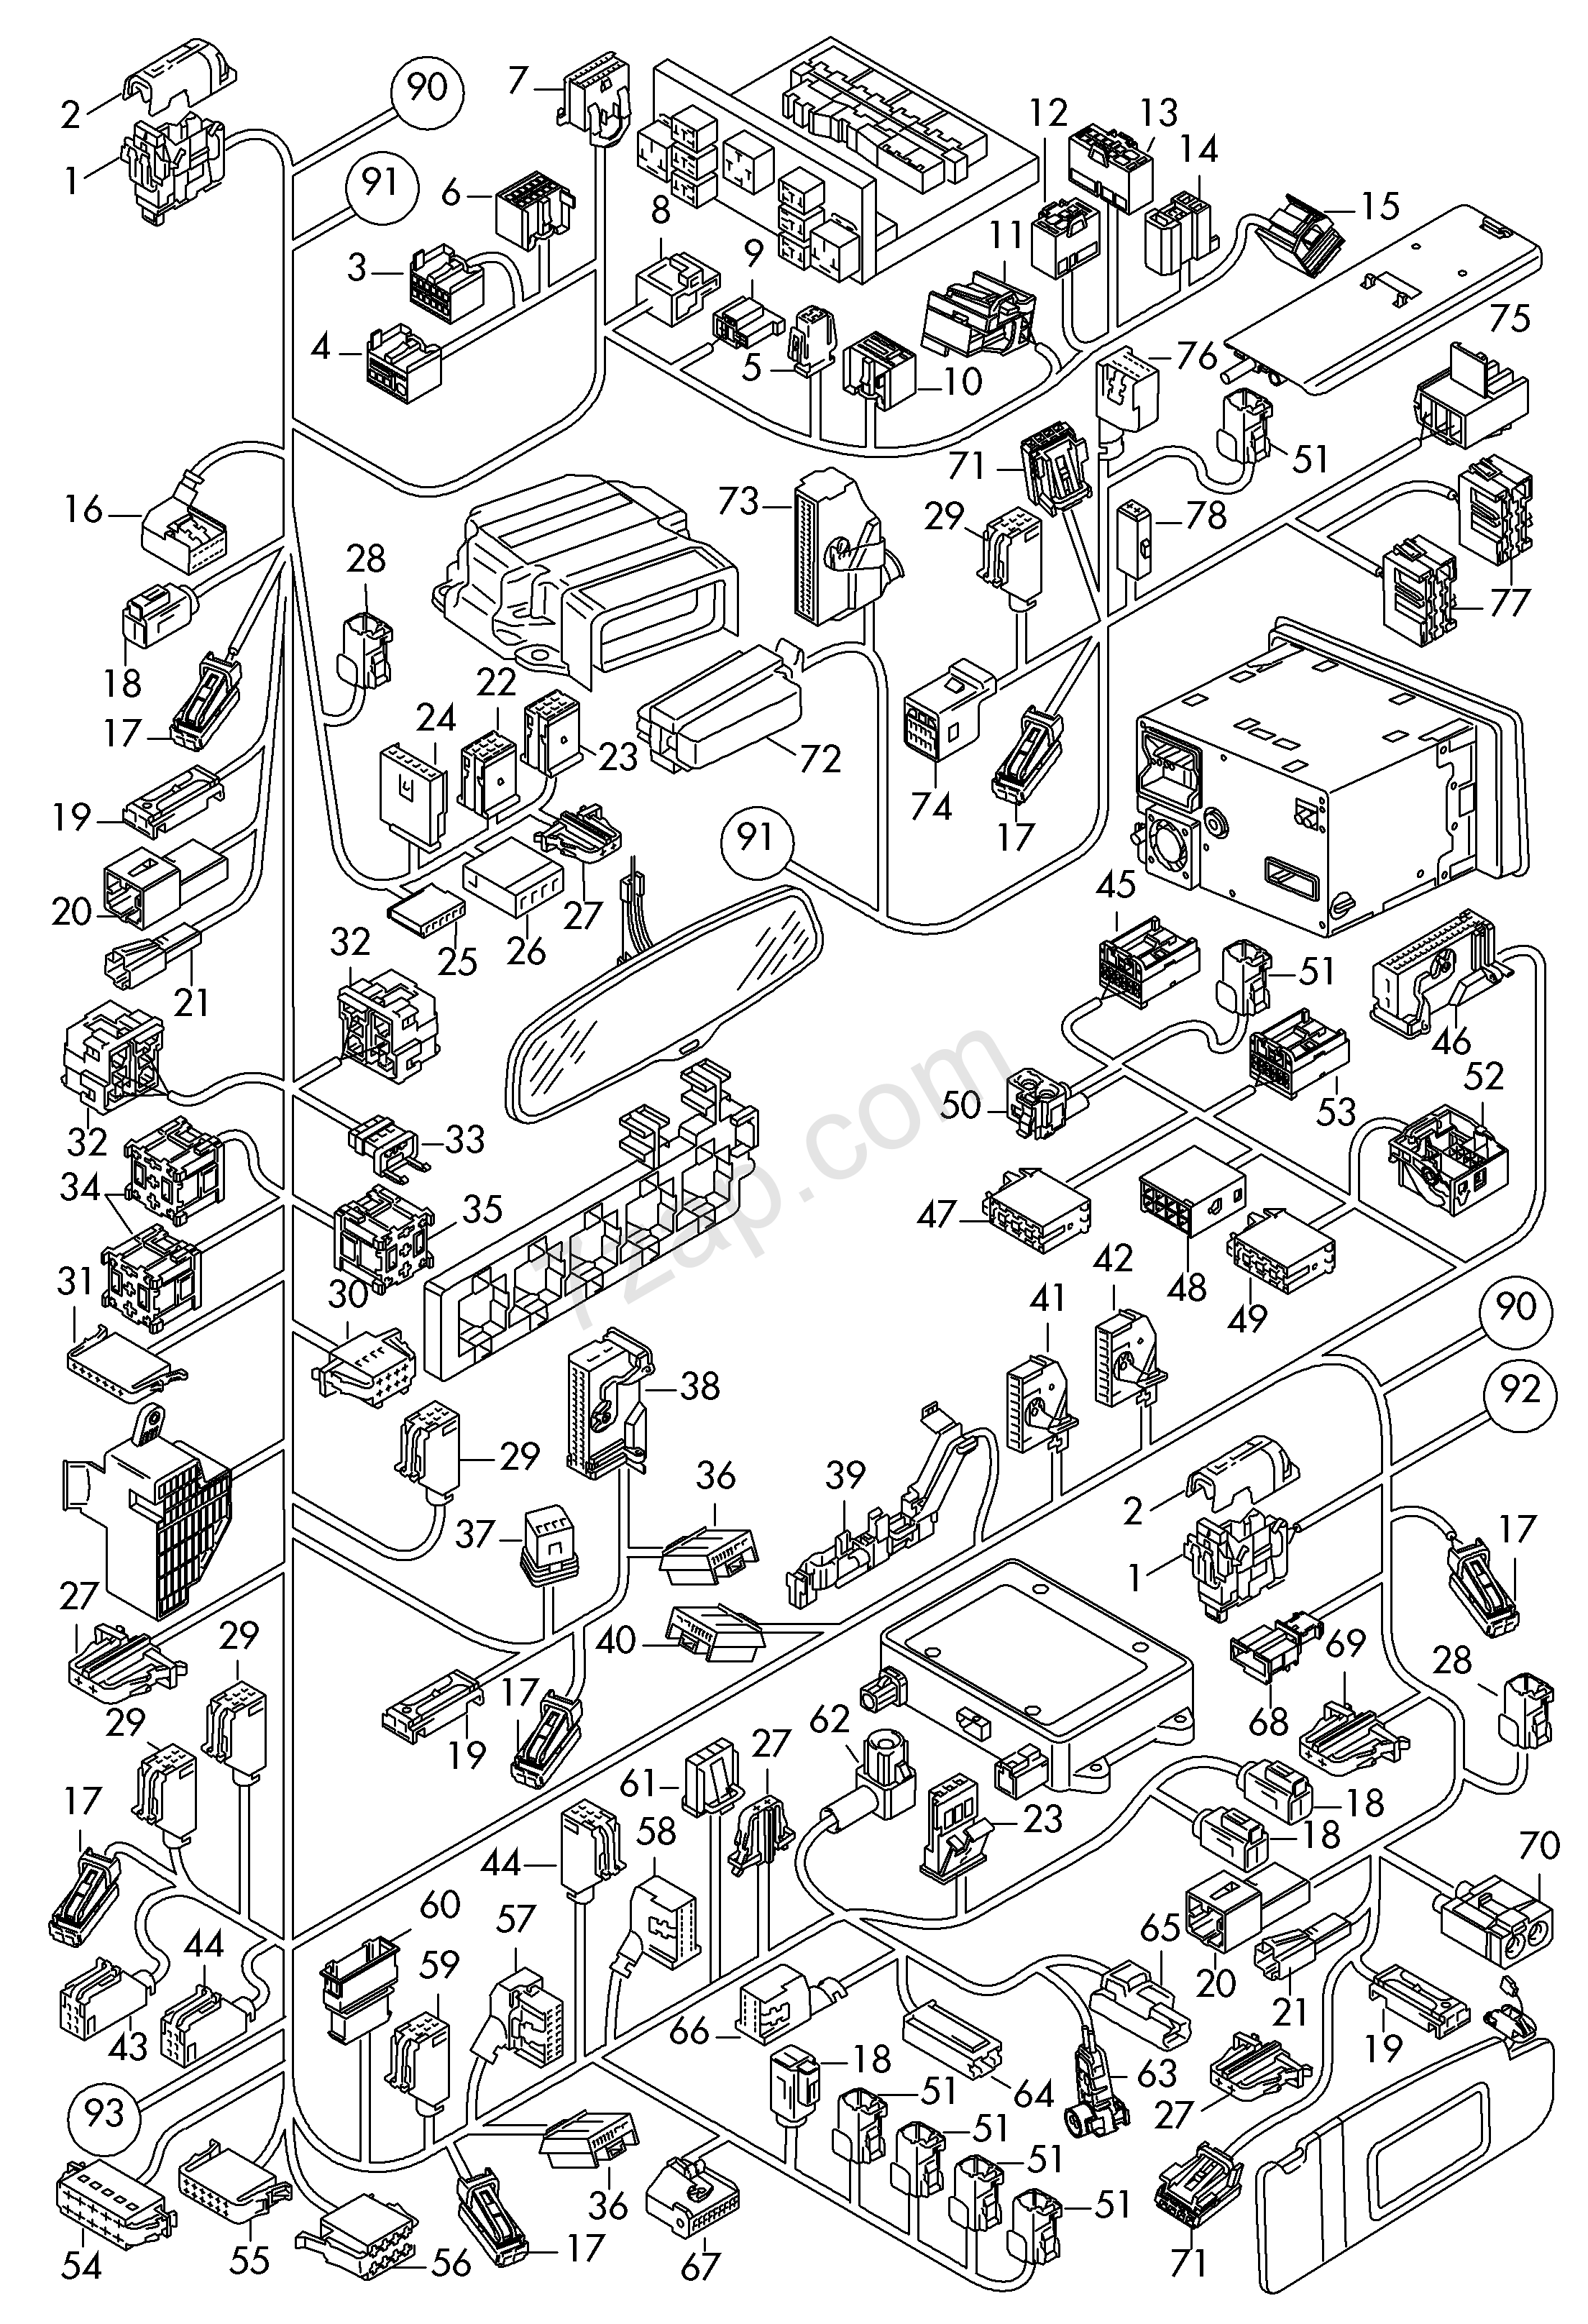 1997 ford festiva wiring diagram with 1993 Audi 100 Wiring Diagram on 1993 Audi 100 Wiring Diagram in addition 91 Ford Jbl Wiring further Chevy High Torque Mini Starter Wiring moreover Geo Metro Engine Diagram Cooling Fan together with Temperature Sensor Location 2007 Mustang Gt.